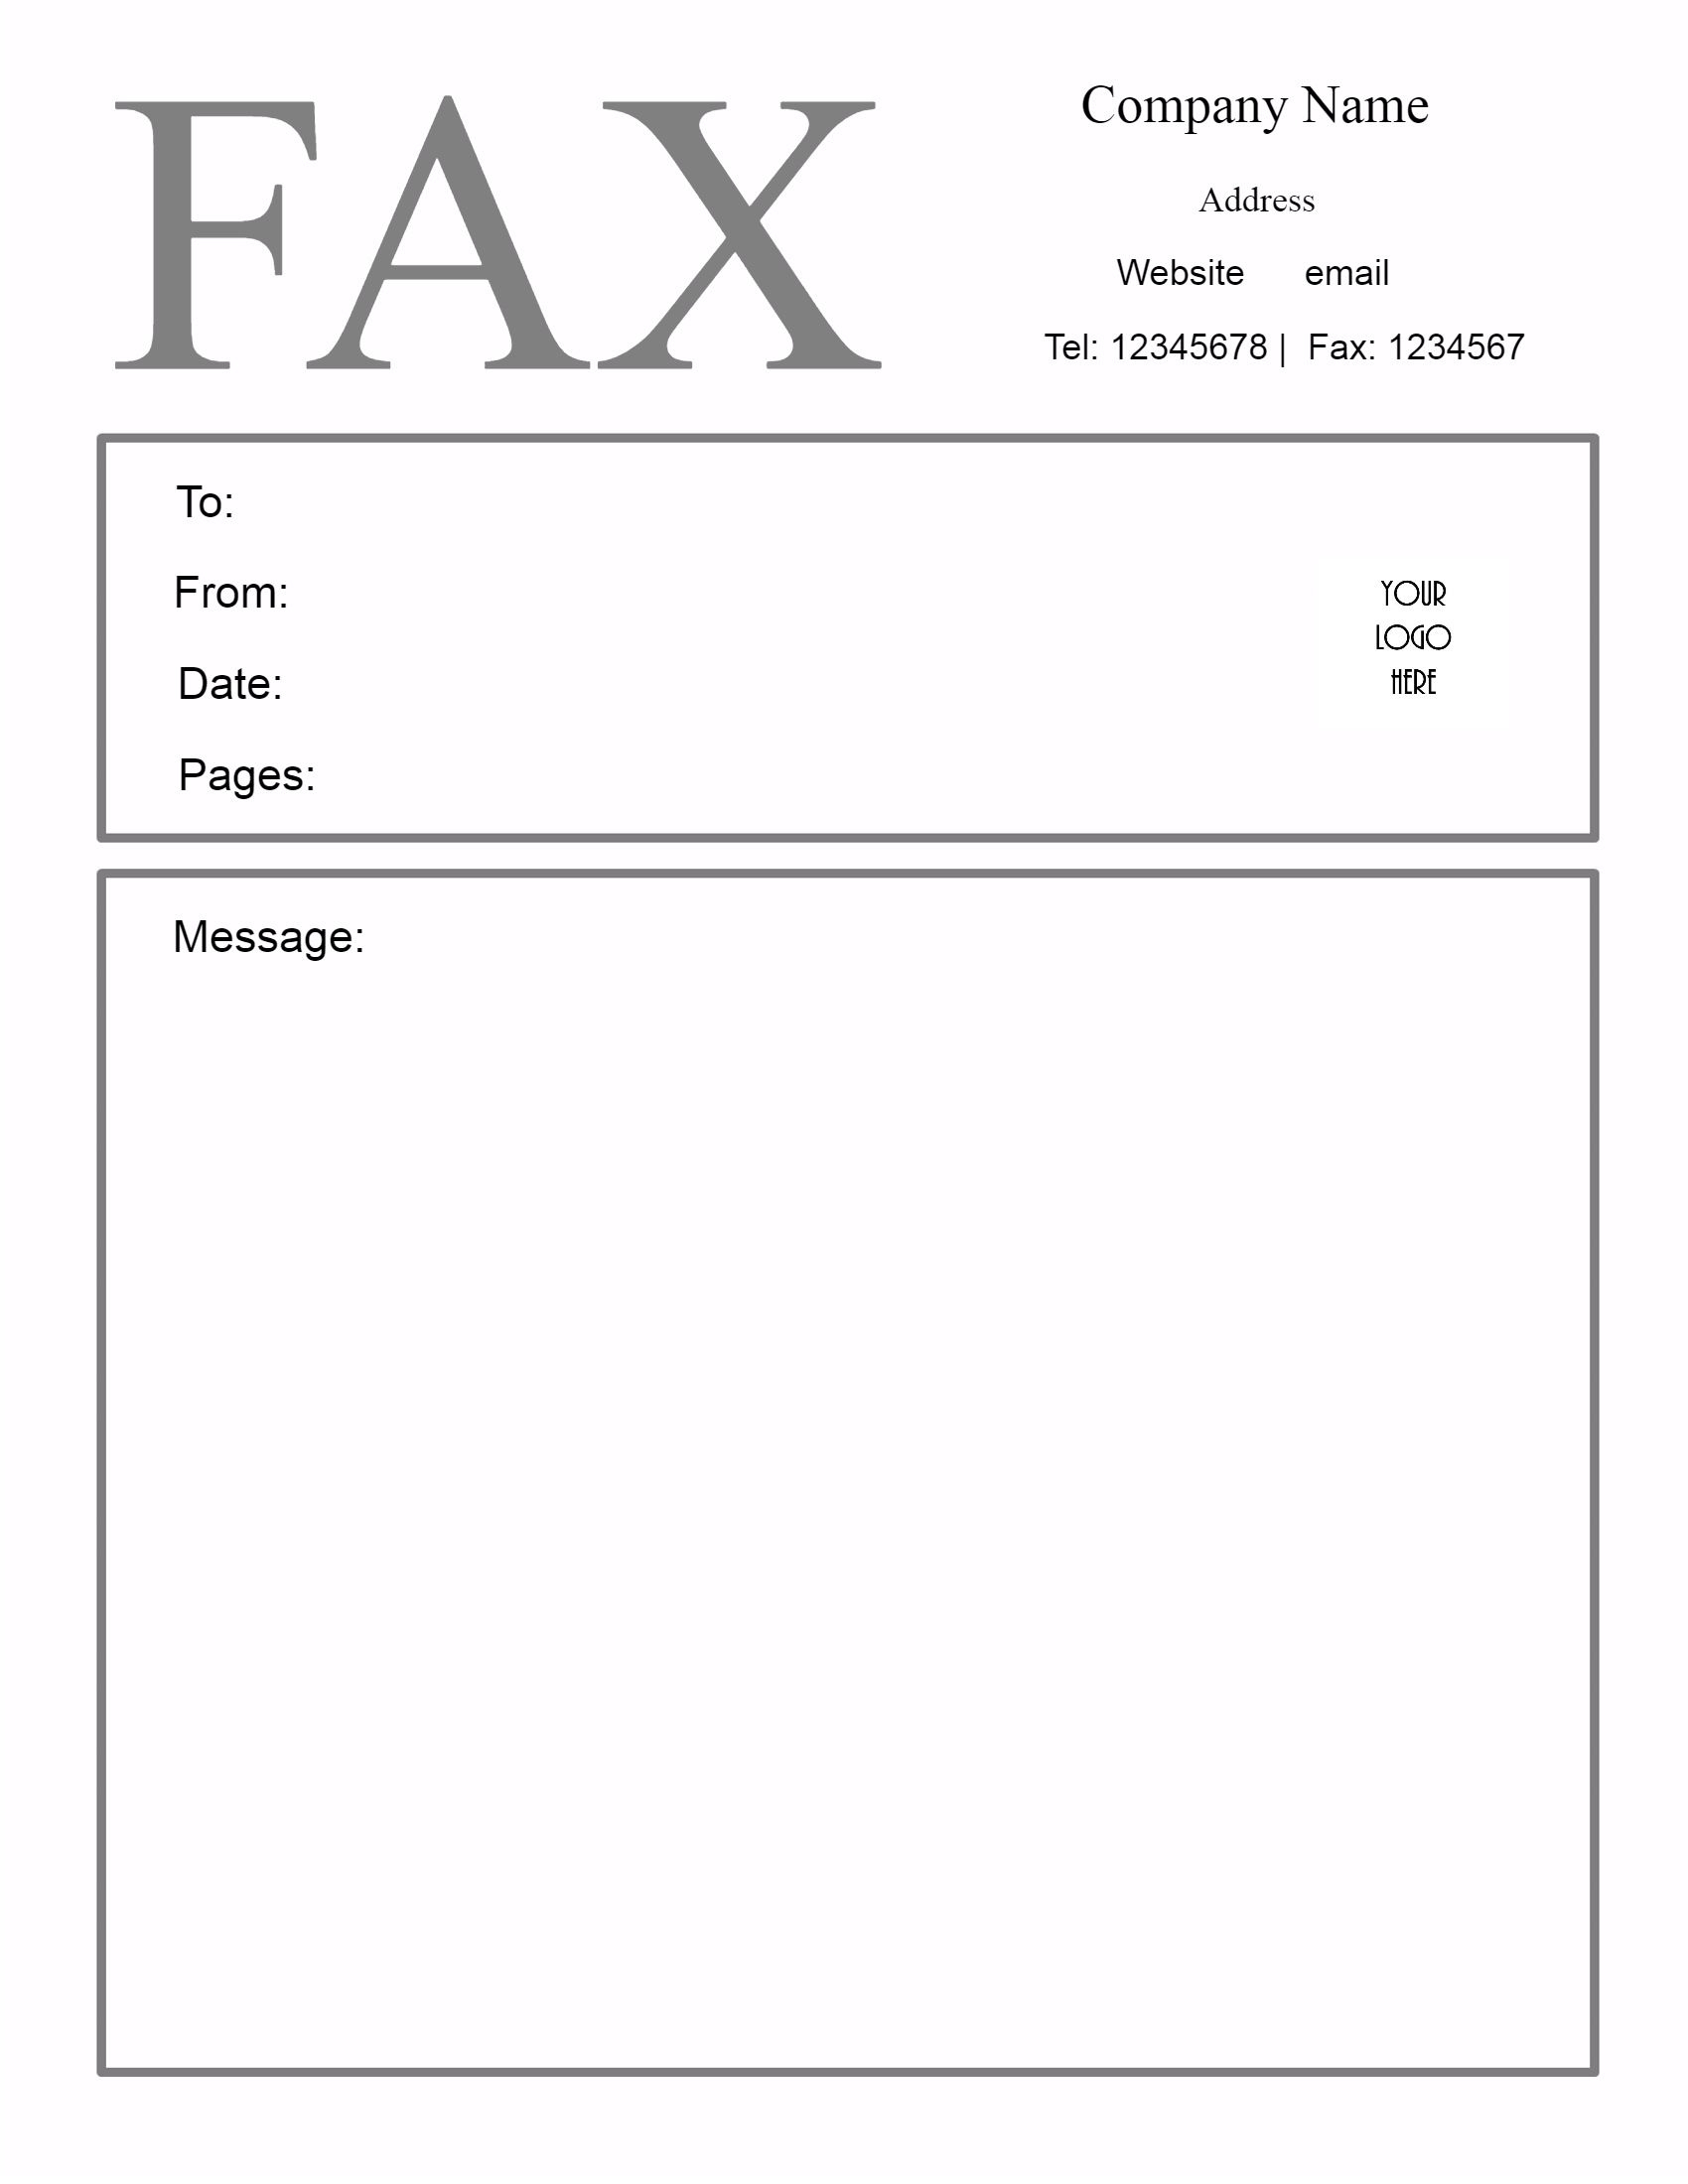 Free Fax Cover Sheet Template | Customize Online Then Print - Free Printable Fax Cover Sheet